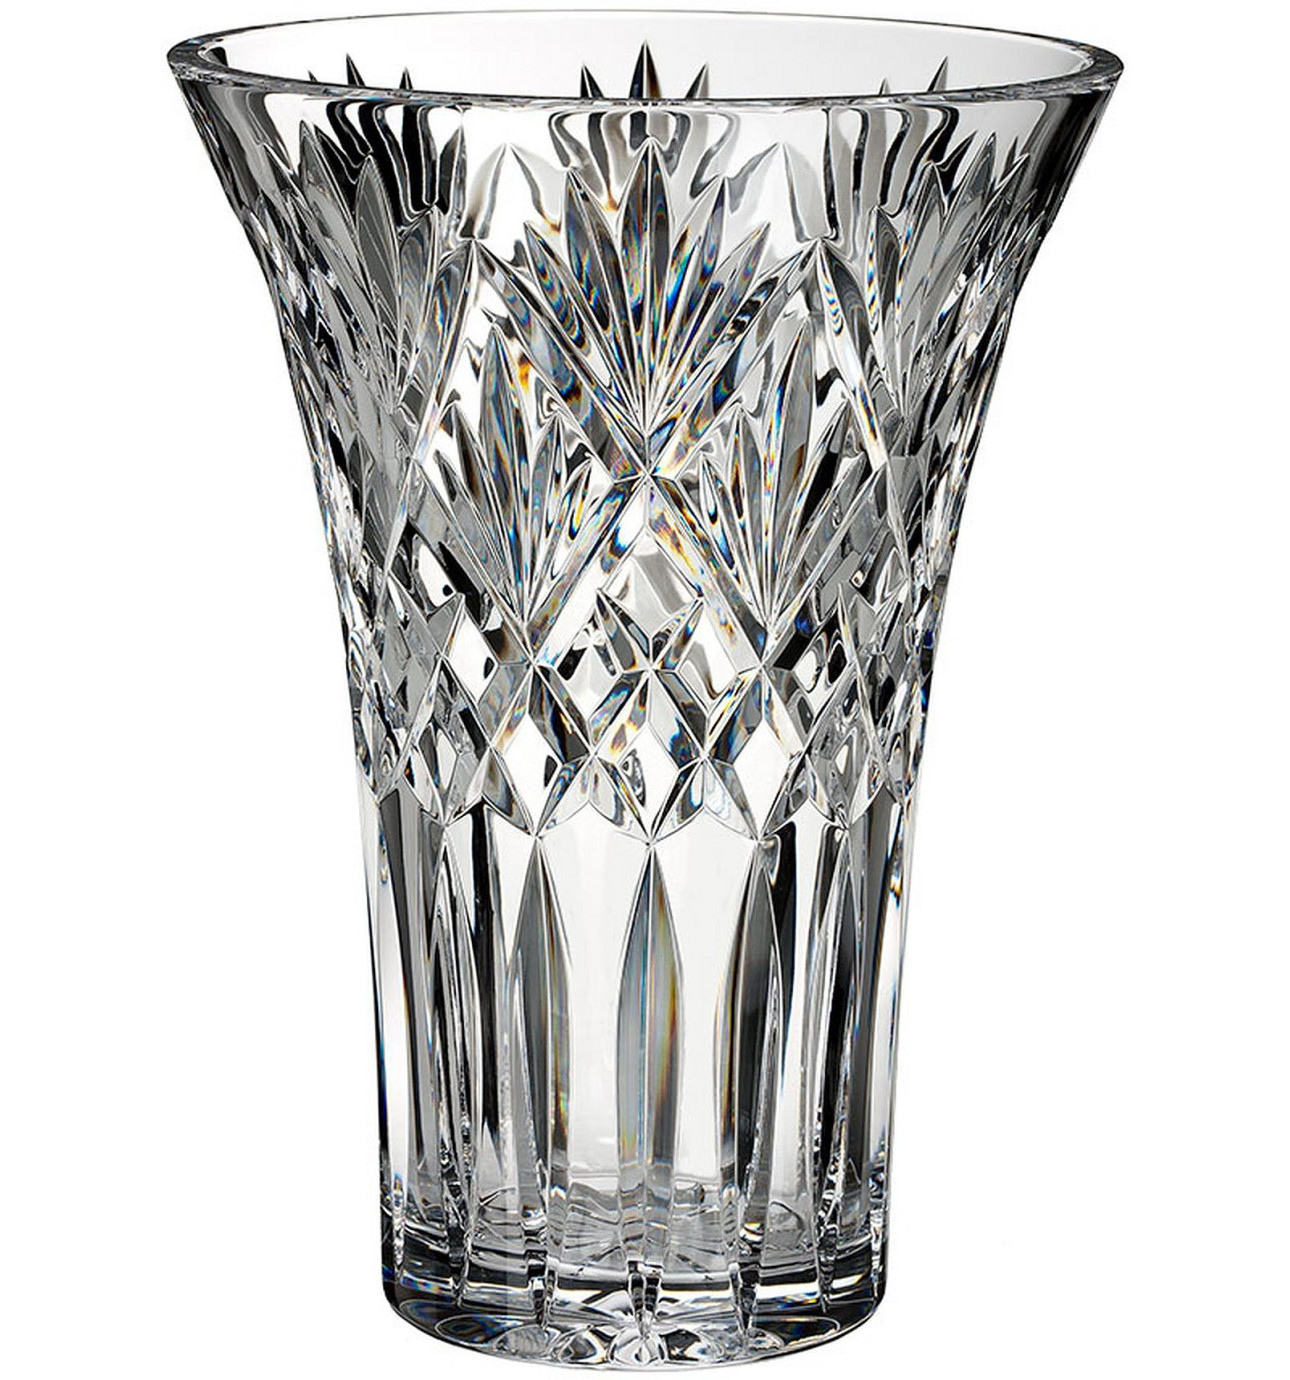 Waterford giftology lismore sugar bud vase david jones waterford giftware cassidy vase 25cm 29900 floridaeventfo Image collections